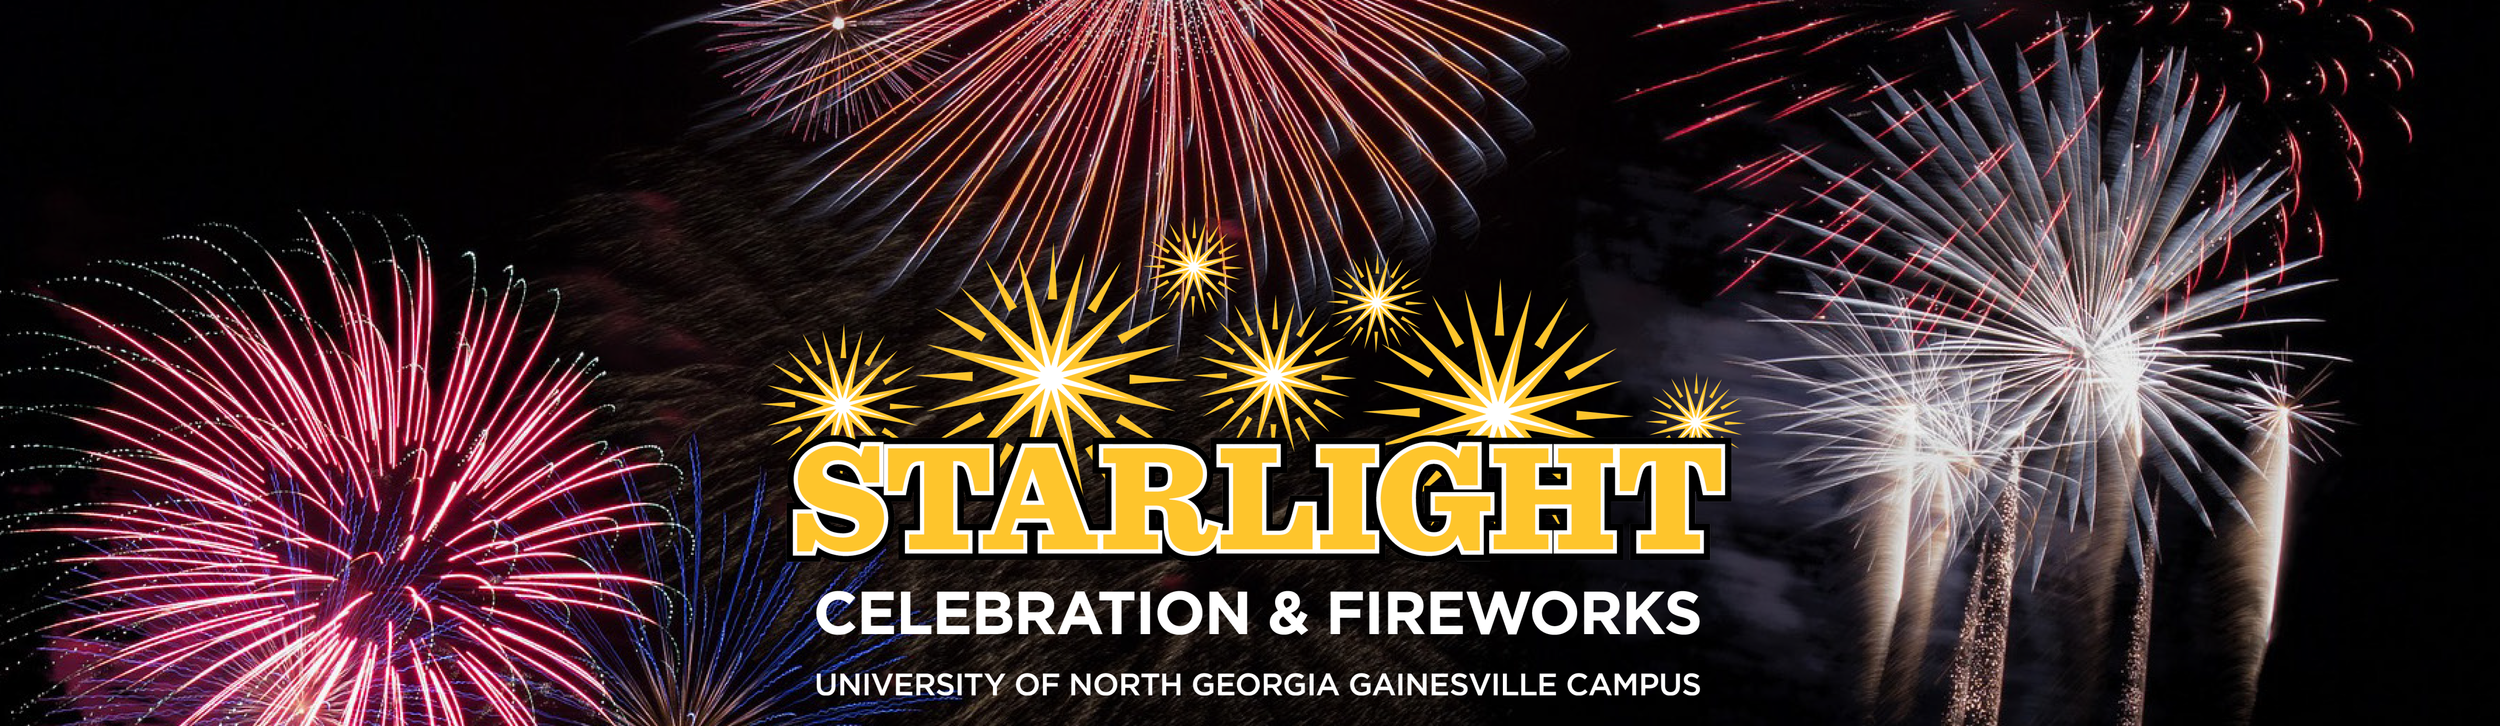 Page banner for Starlight Celebration & Fireworks at the University of North Georgia Gainesville campus.